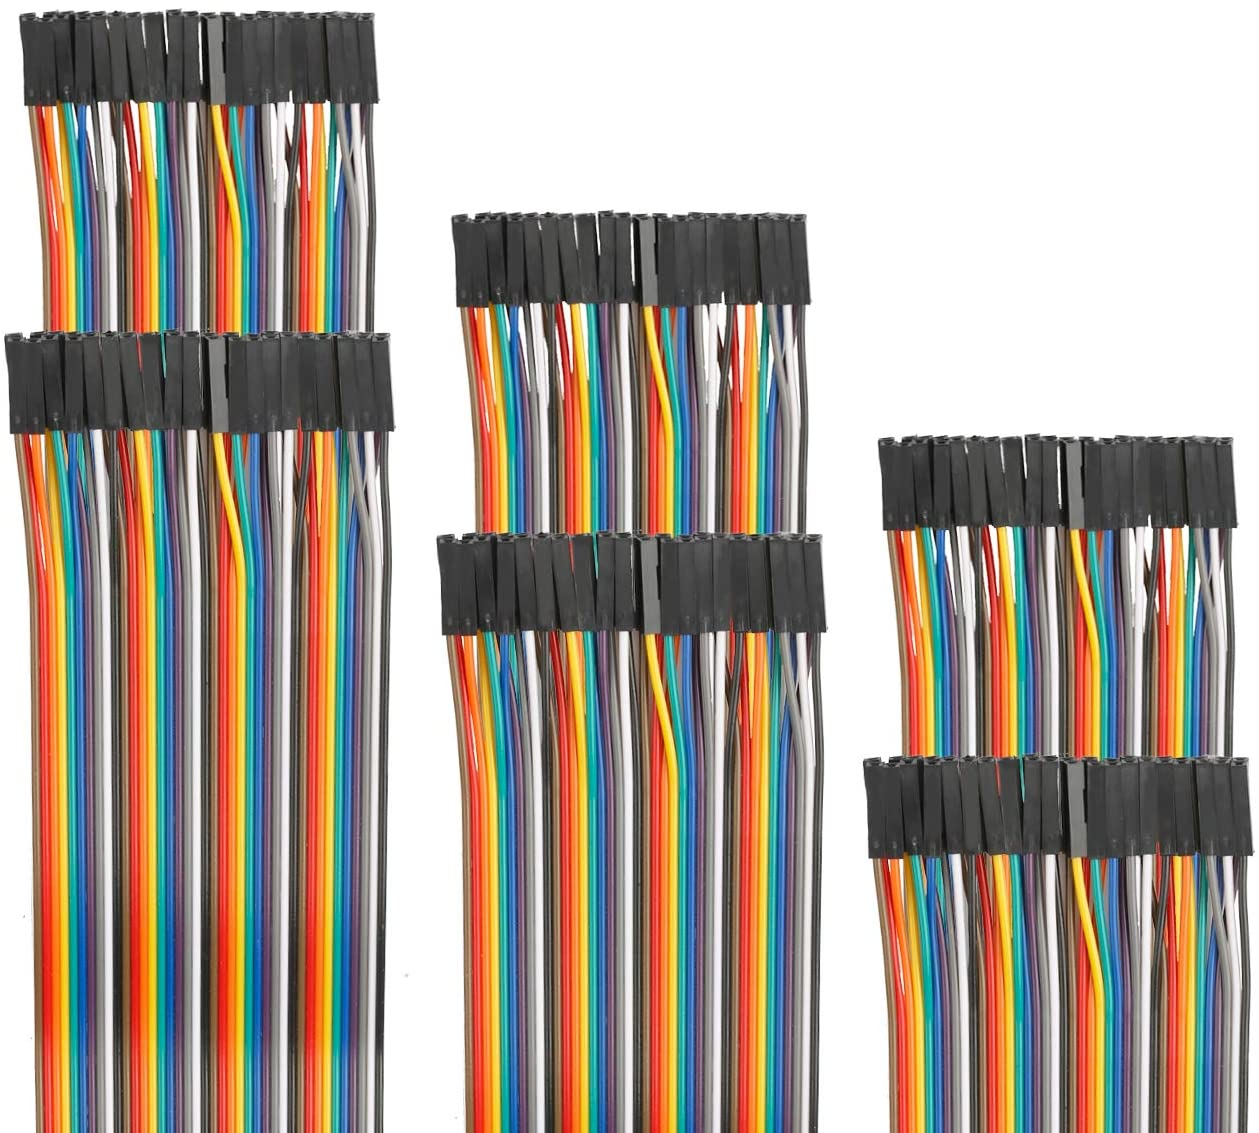 EDGELEC 120pcs 10cm Dupont Wire Female to Female Breadboard Jumper Wires 3.9 inch 1pin-1pin 2.54mm Connector Multicolored Ribbon Cables DIY Wires Length 10 15 20 30 40 50 100cm Optional